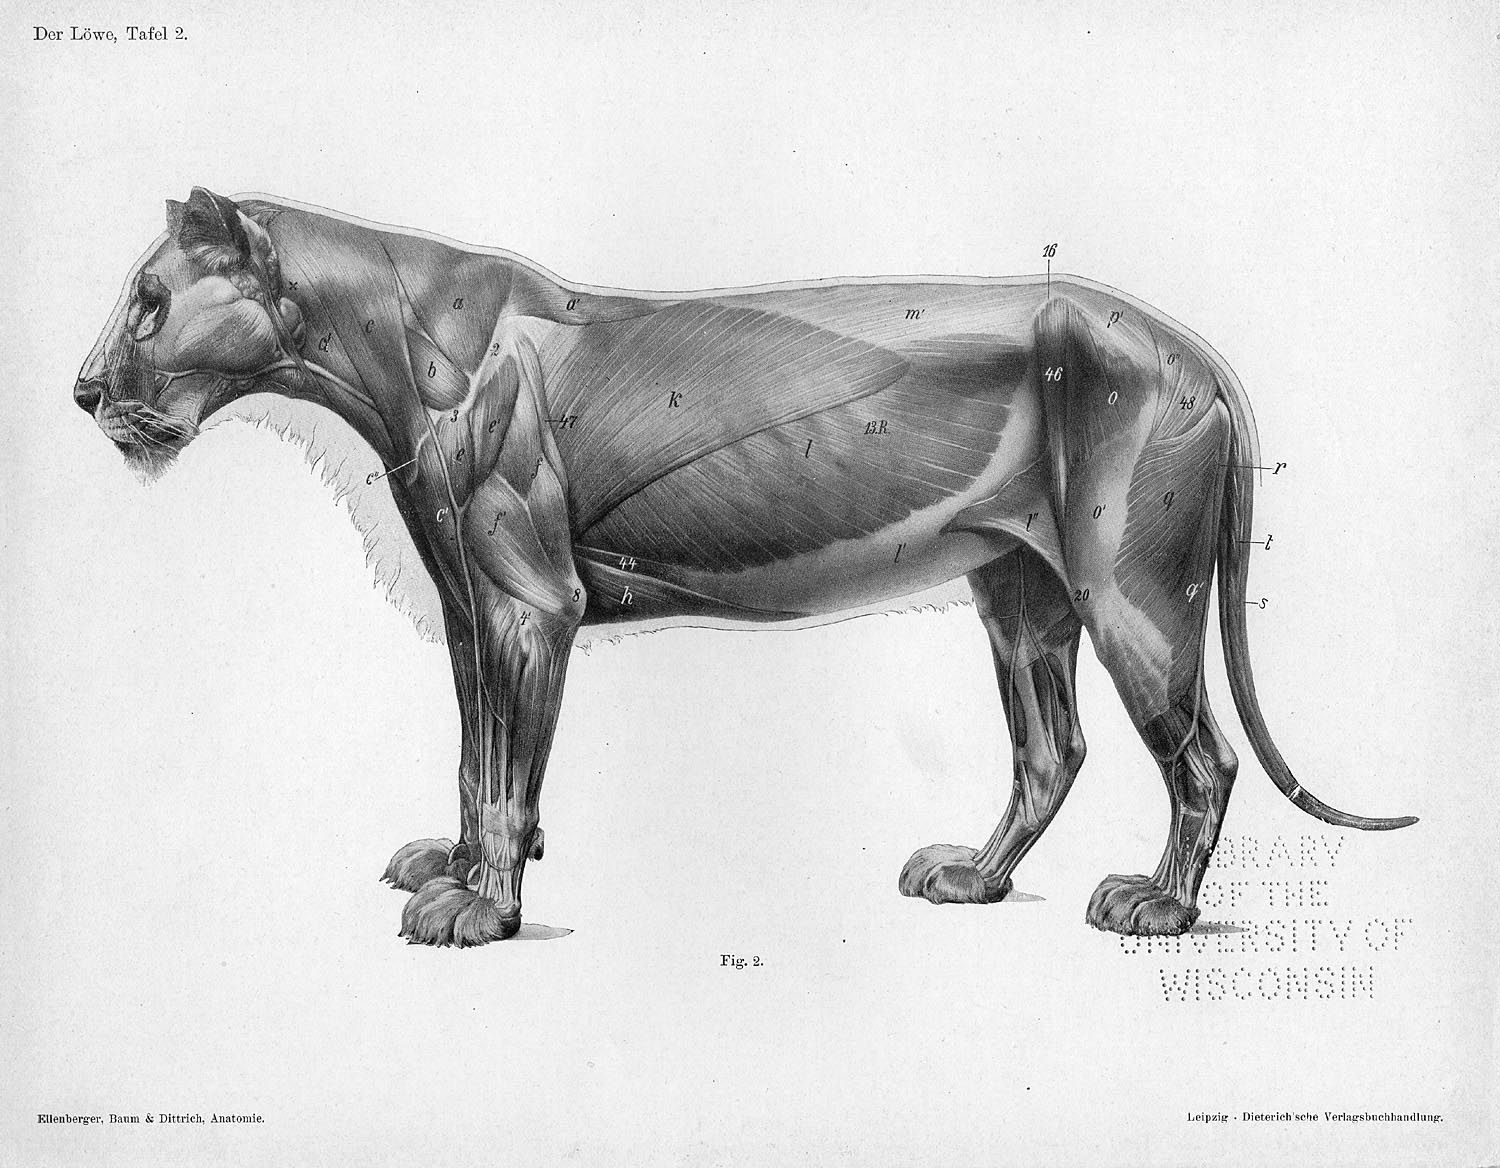 lion muscle side | Creature Anatomy | Pinterest | Lions, Muscles and ...